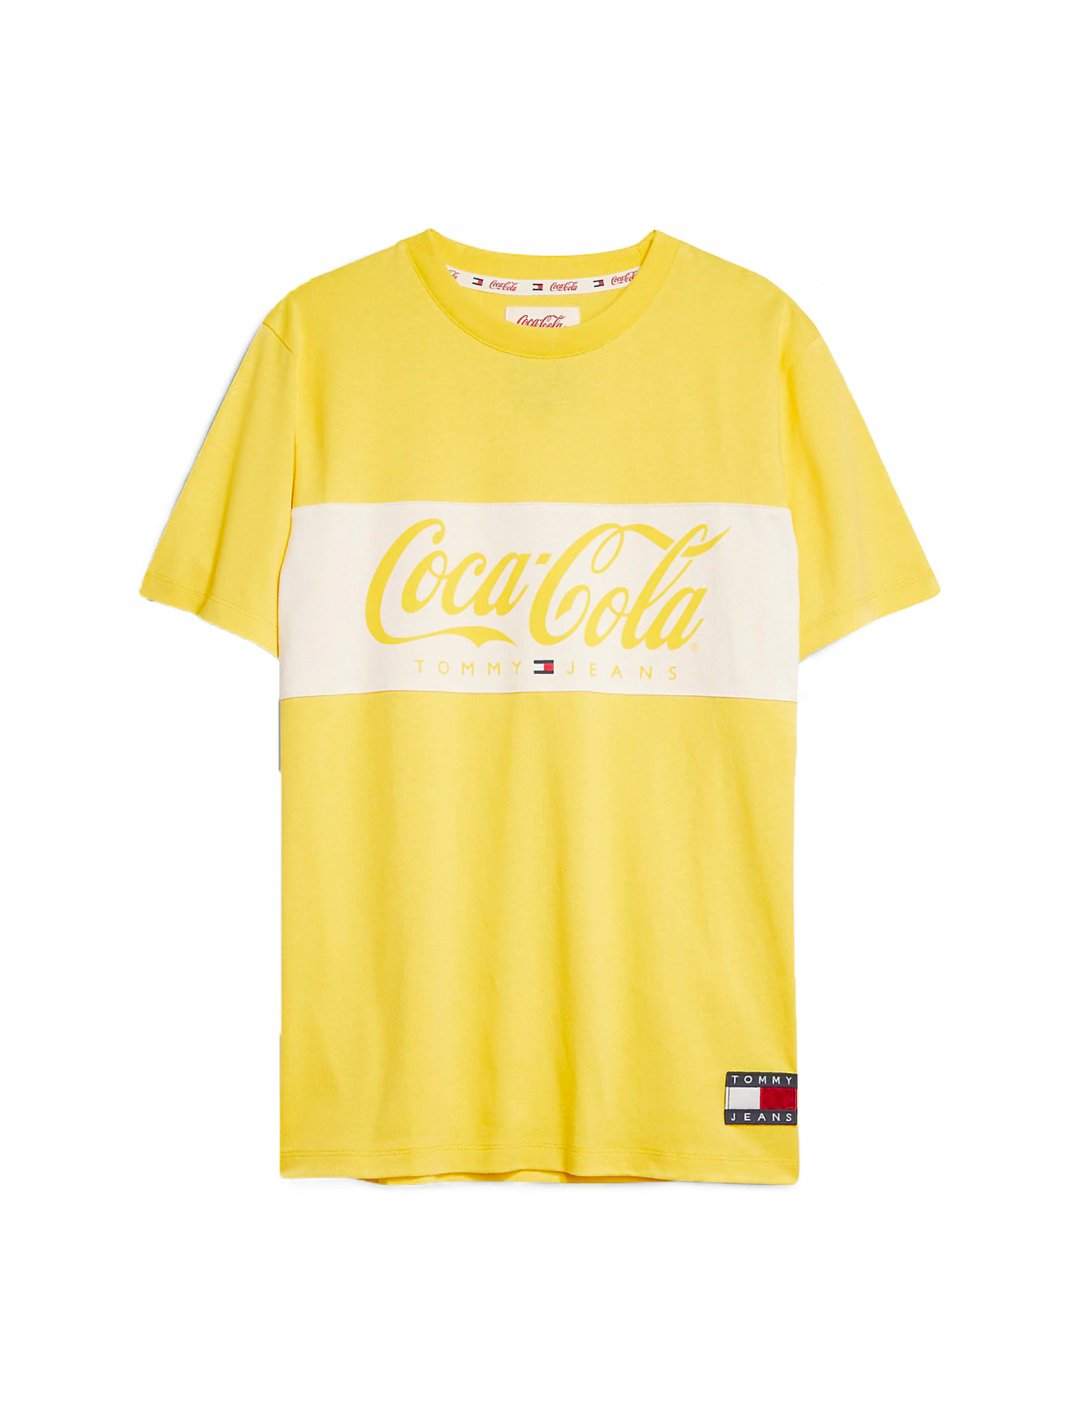 "Coca Cola T-shirt {""id"":5,""product_section_id"":1,""name"":""Clothing"",""order"":5} Tommy Jeans x Coca Cola"